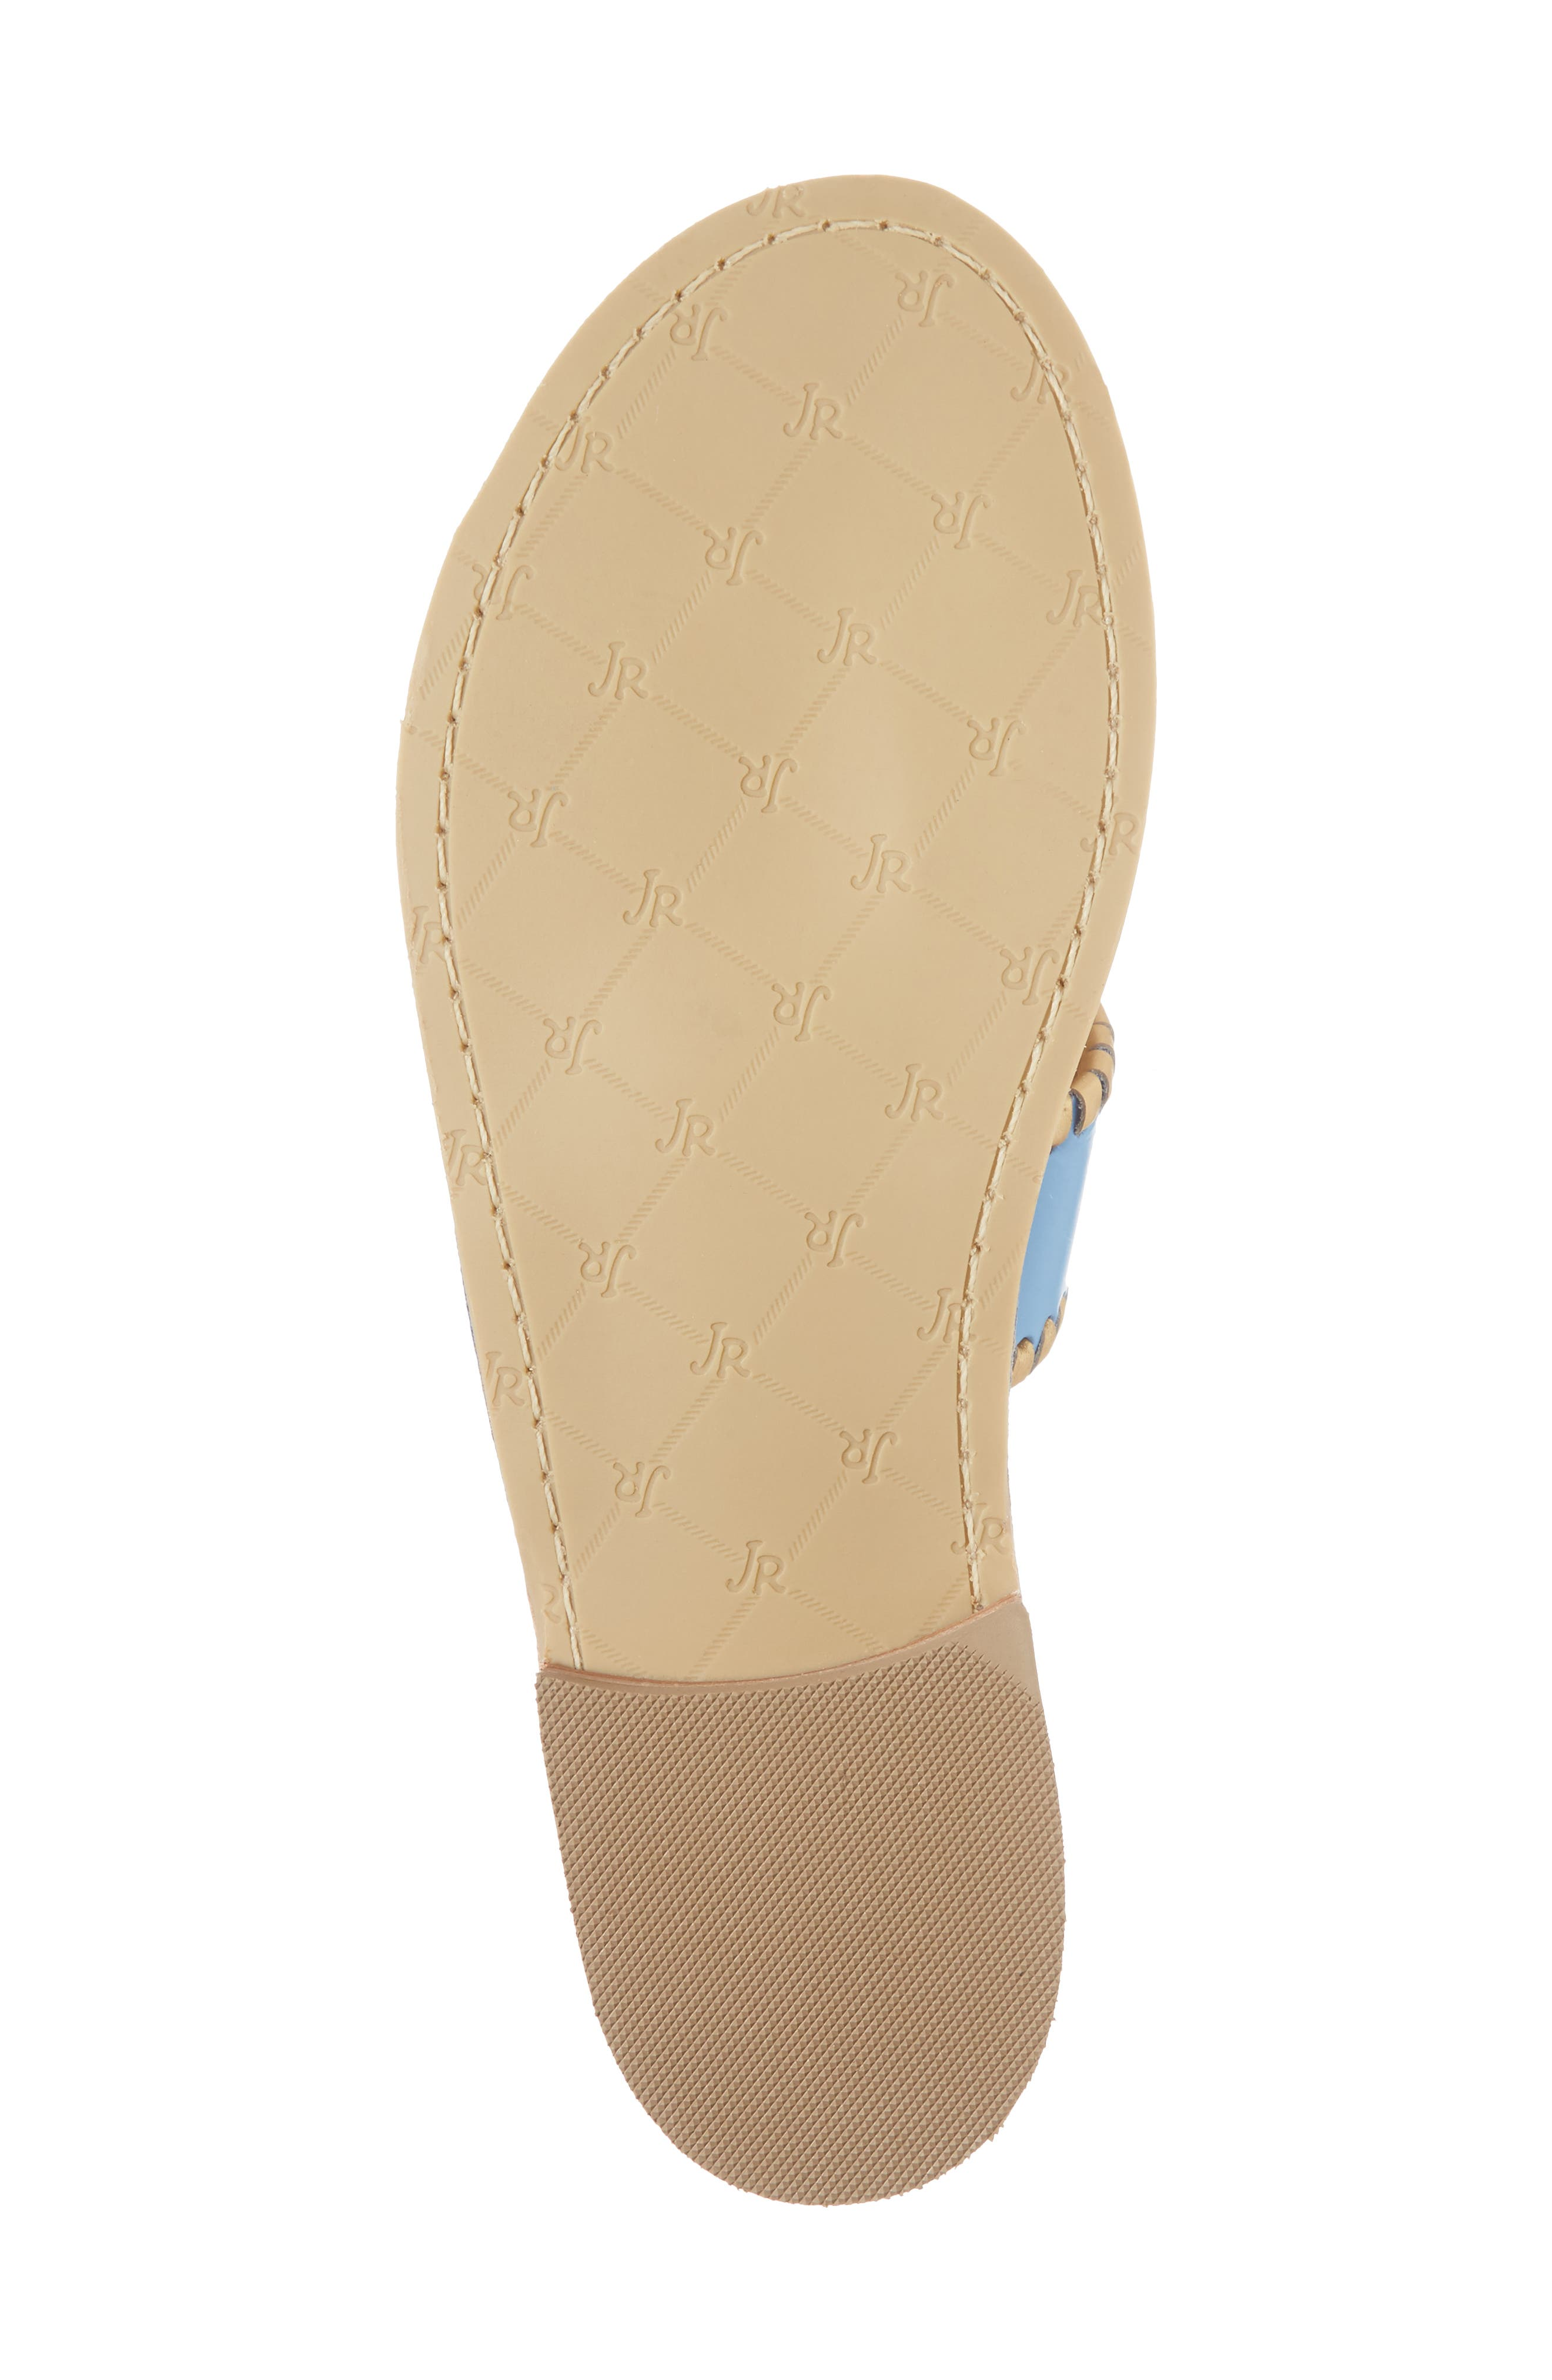 Hollis Flat Sandal,                             Alternate thumbnail 6, color,                             French Blue Leather